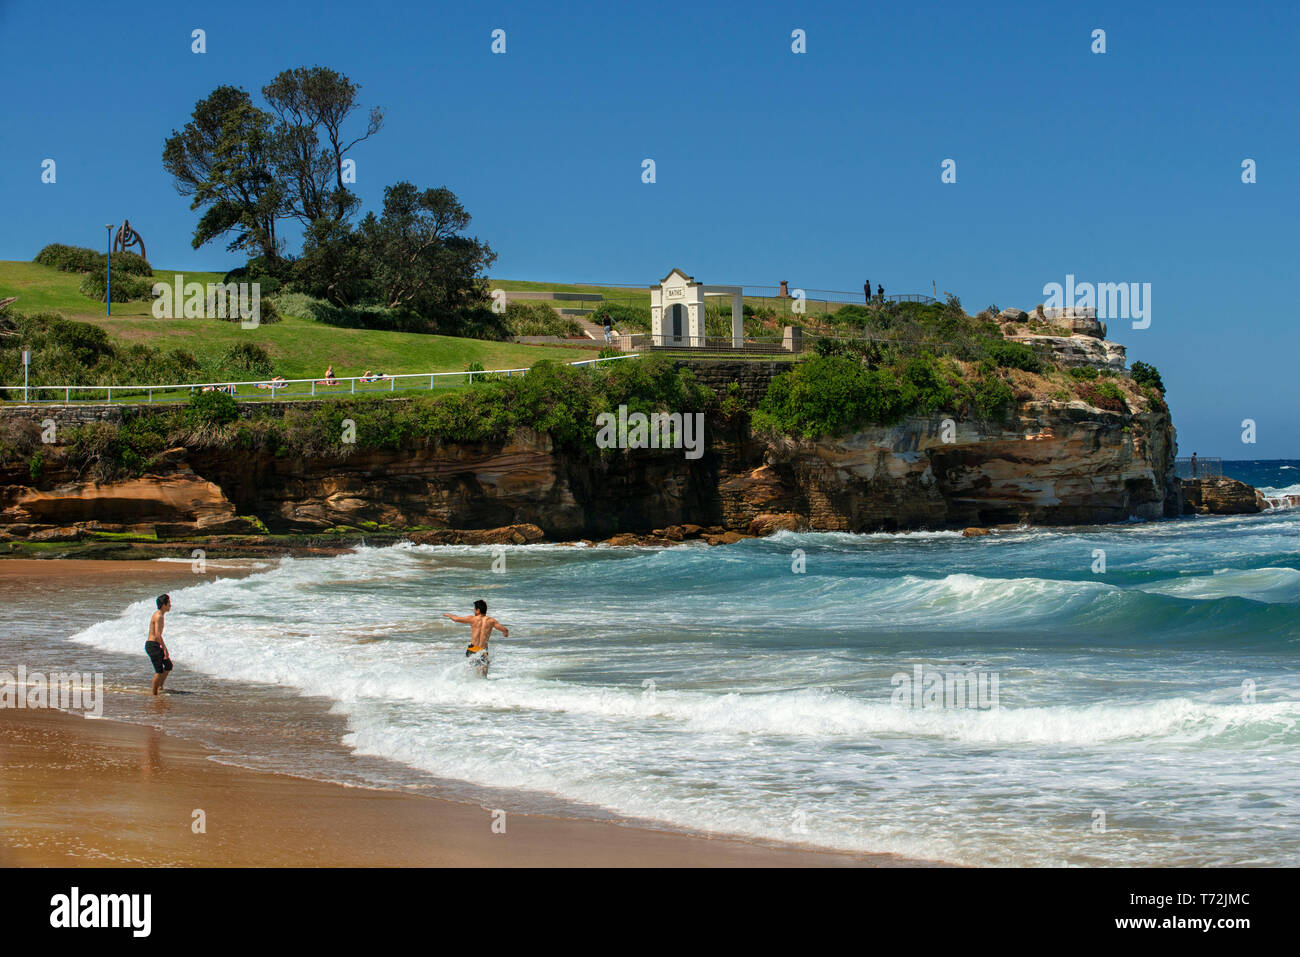 The Bondi beach to Coogee walk is a coastal walk in Sydney New South Wales, Australia. People in Coogee beach Dolphins Point and Giles Baths - Stock Image